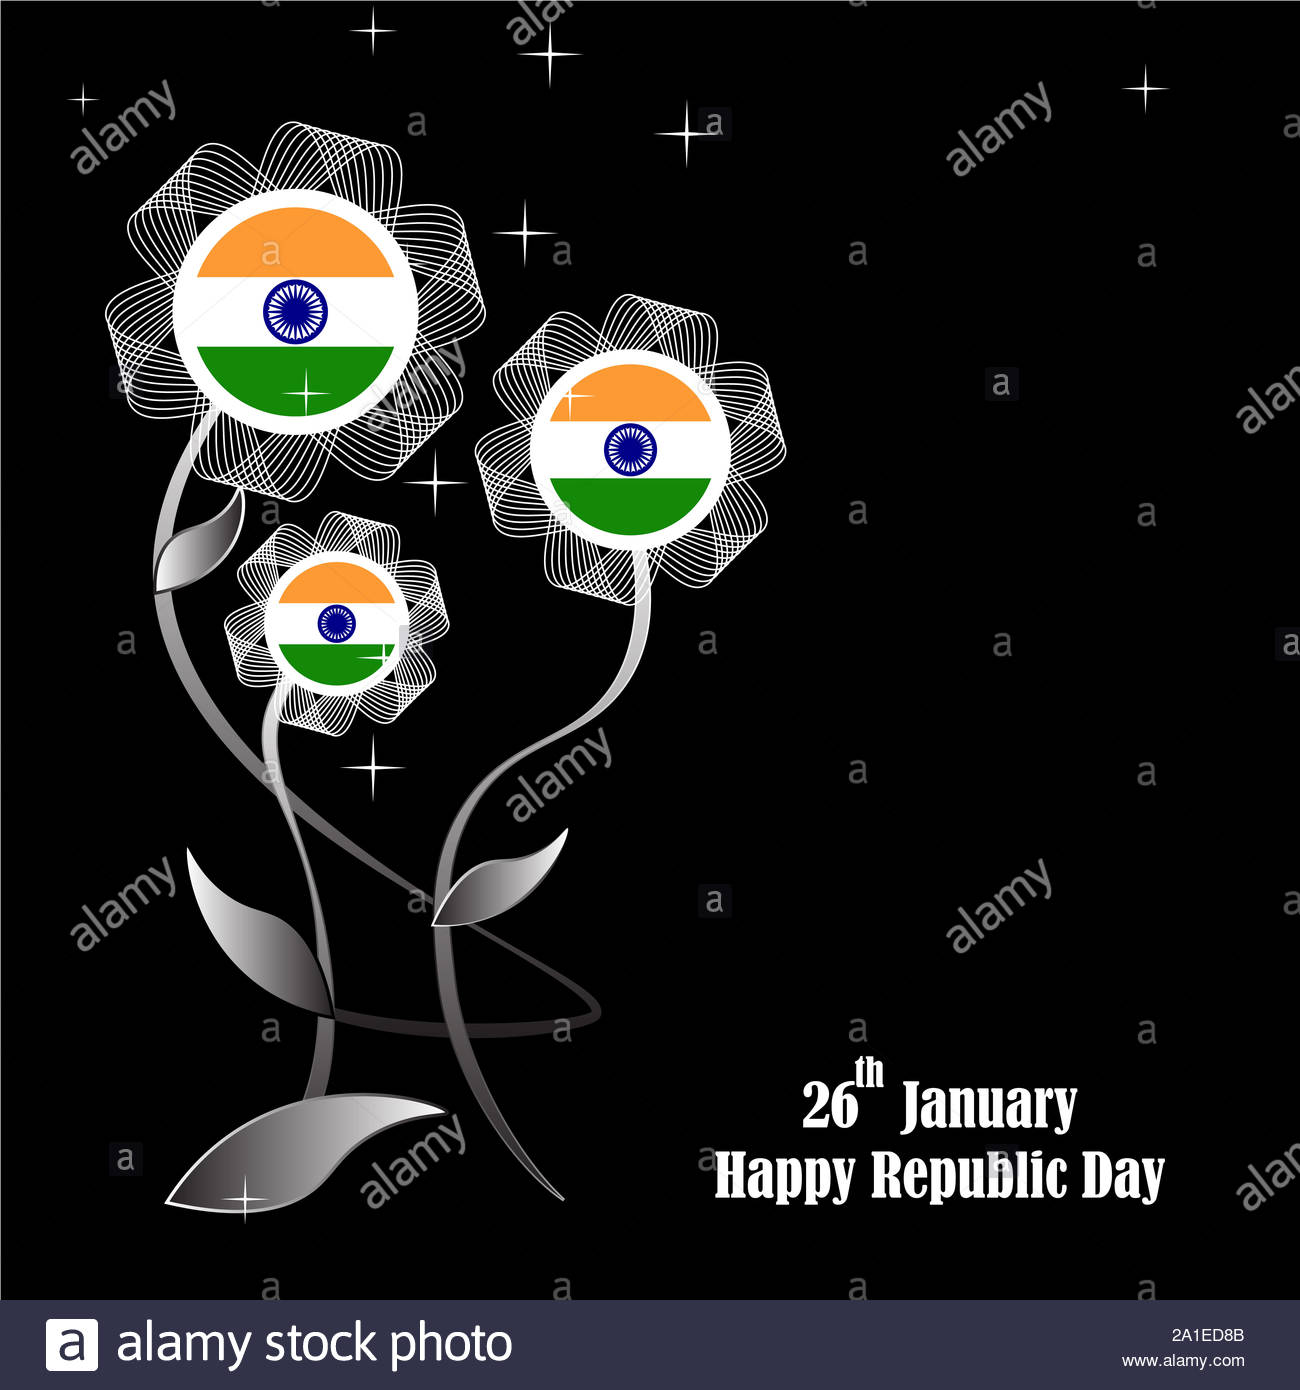 Republic Day India India Gate High Resolution Stock Photography And Images Alamy 26 january 2021 india gate pass